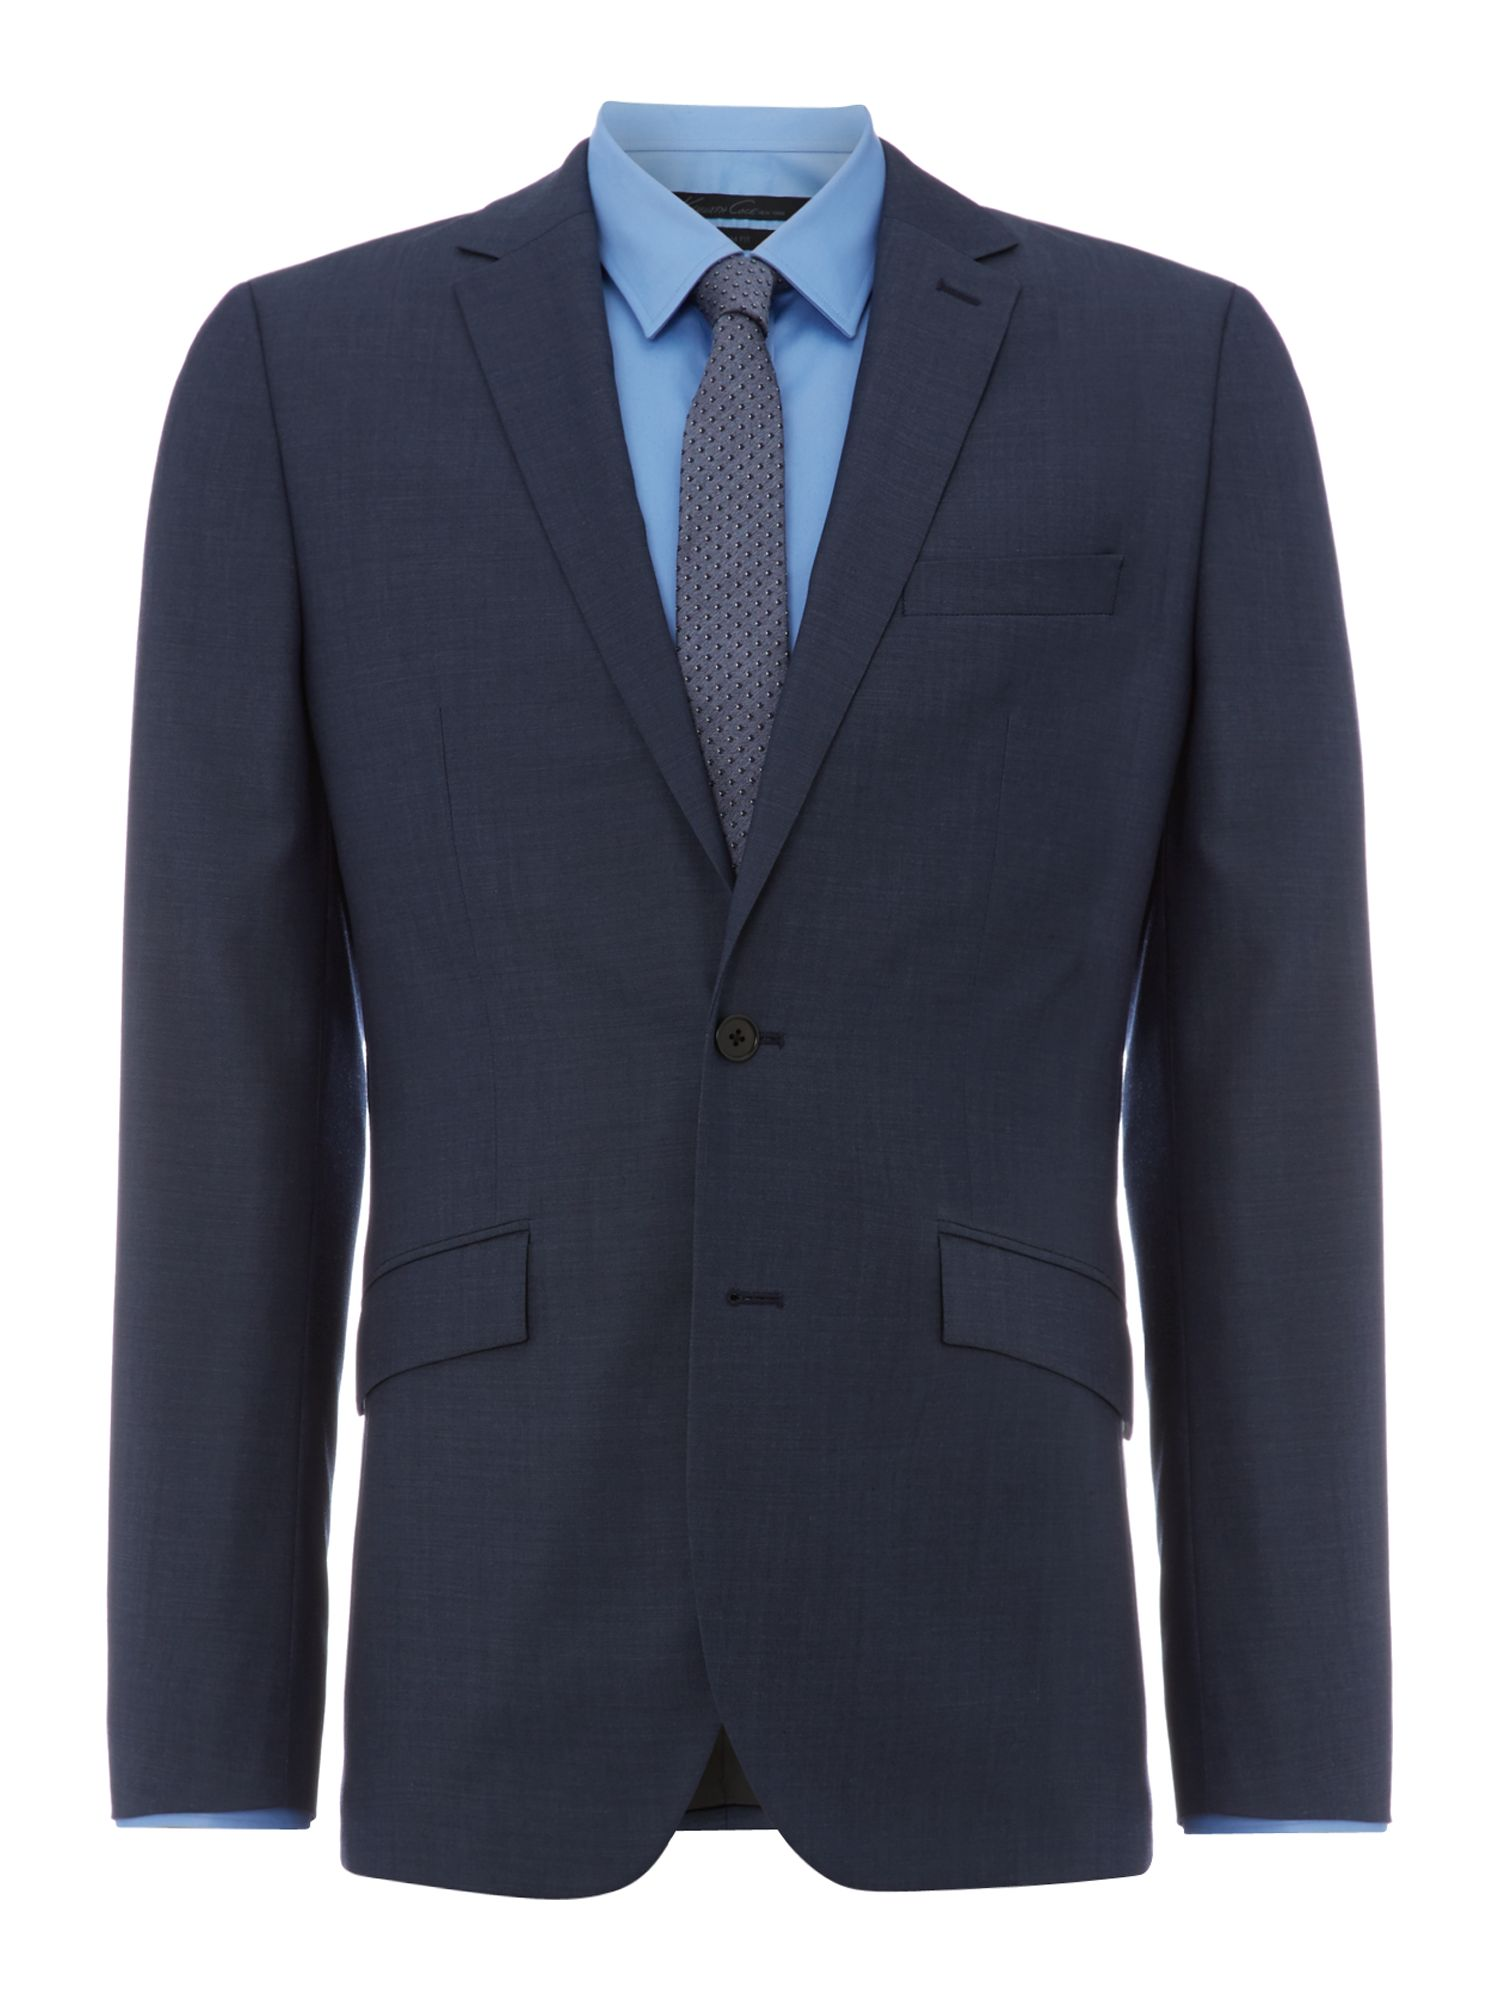 Byram Twill Travel Suit Jacket